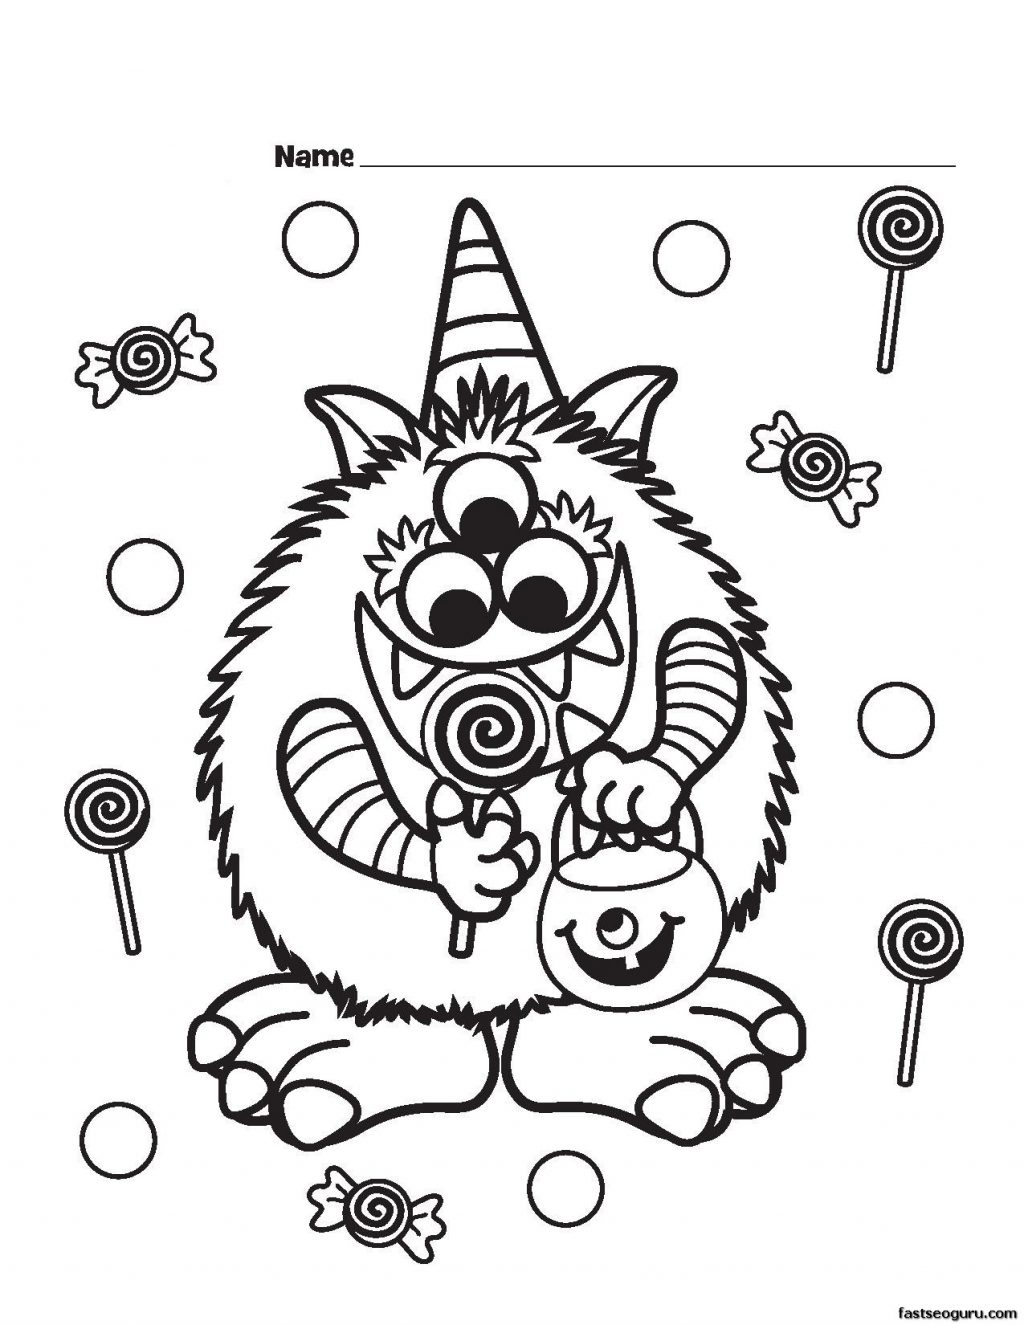 Cute Halloween Coloring Pages Printable Coloring Page Amazing Printable Halloween Coloring Pages Page Cute